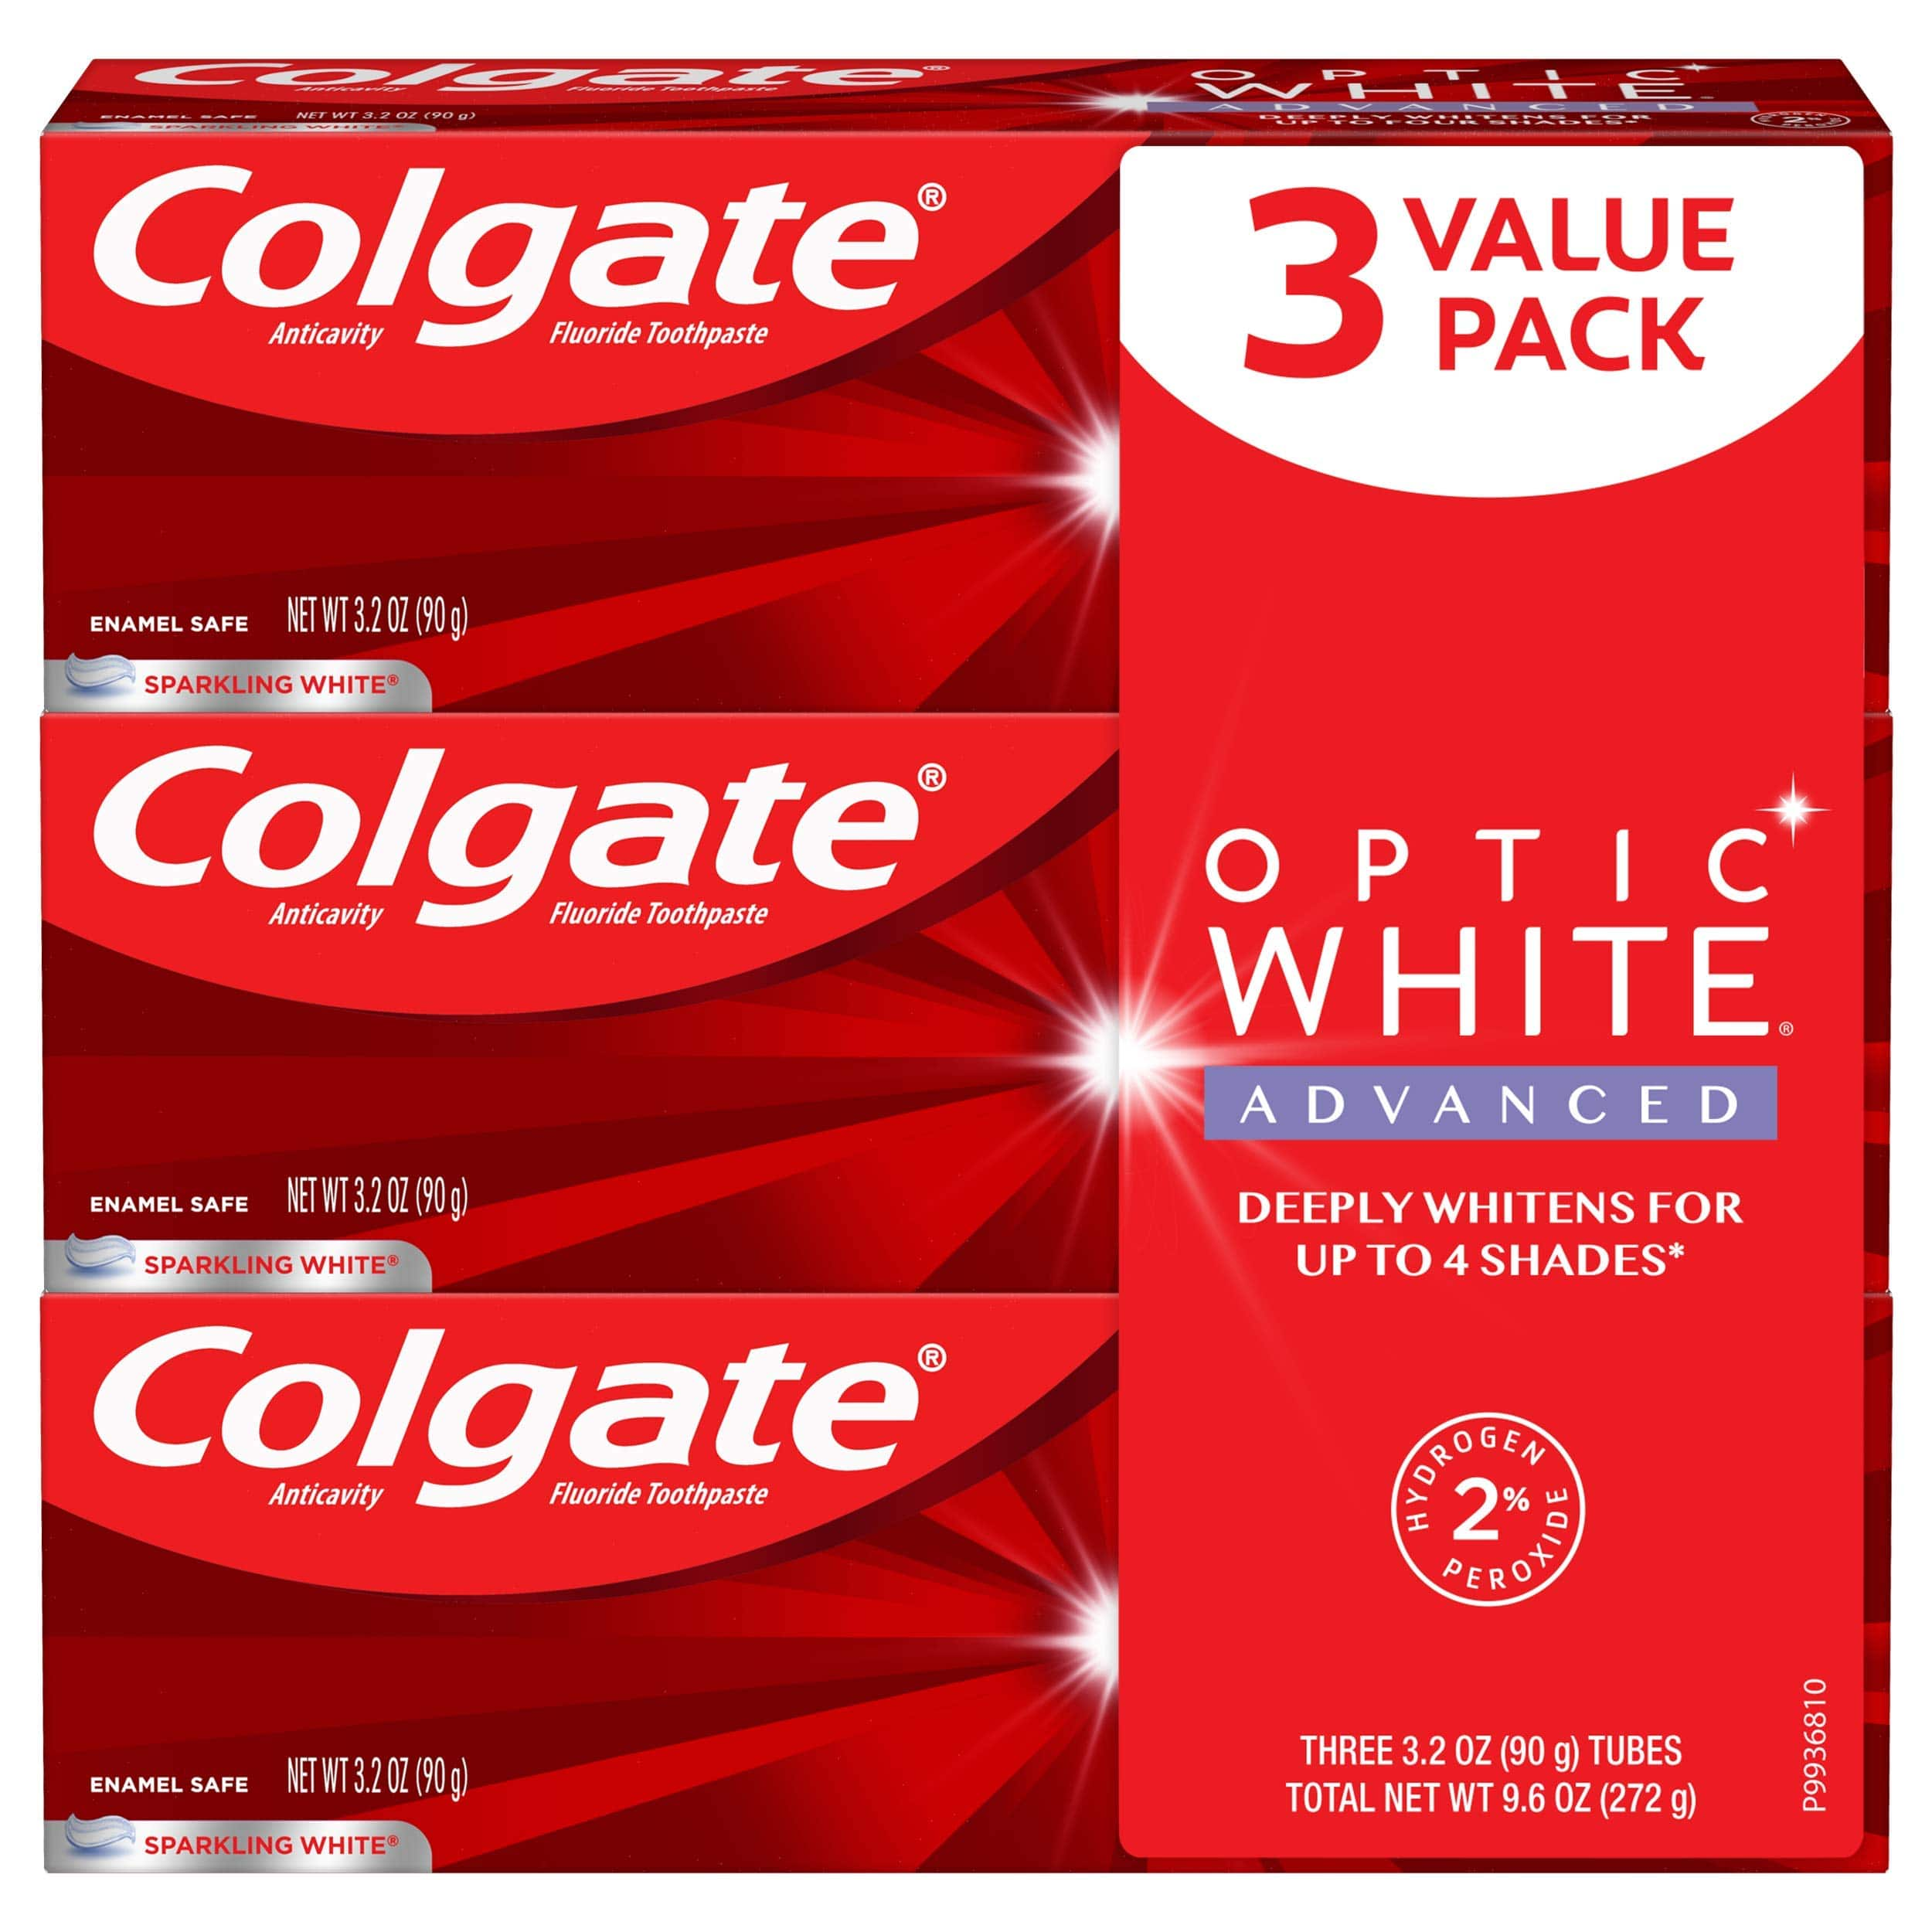 Amazon: 3-Pack Colgate Optic White Advanced Teeth Whitening Toothpaste with Fluoride, 2% Hydrogen Peroxide, Sparkling White - $7.01 AC with S&S, or $7.48 without